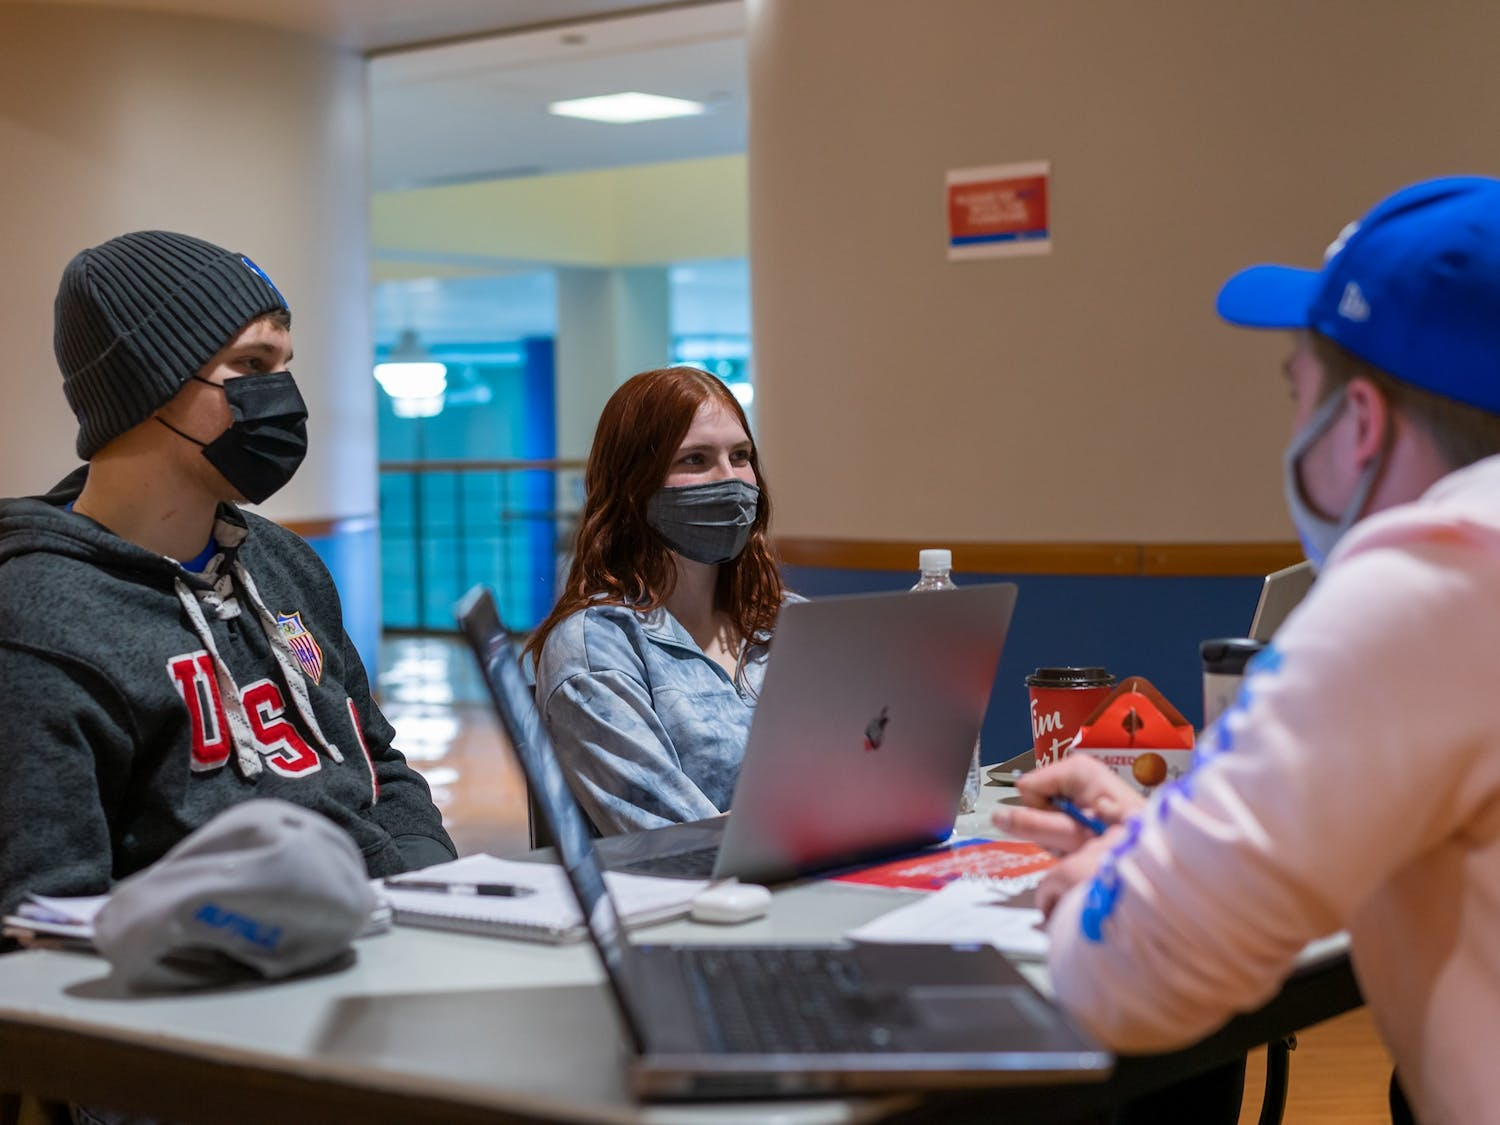 Students, faculty and staff — regardless of vaccination status — will be required to wear face masks inside all campus buildings this fall.